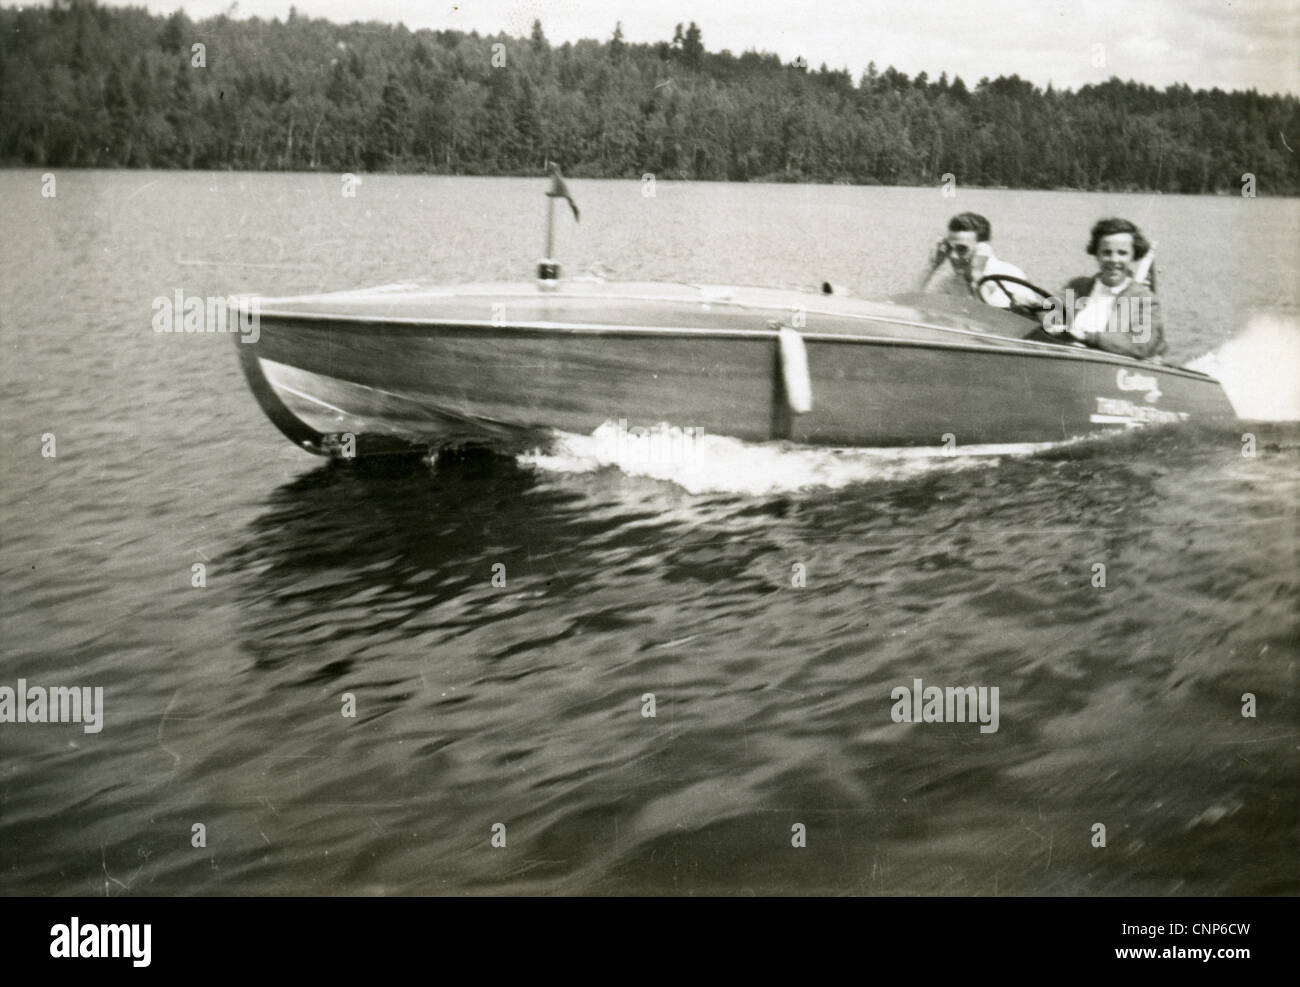 Circa 1940s photograph of a man and woman riding a motorboat on a lake, USA. - Stock Image